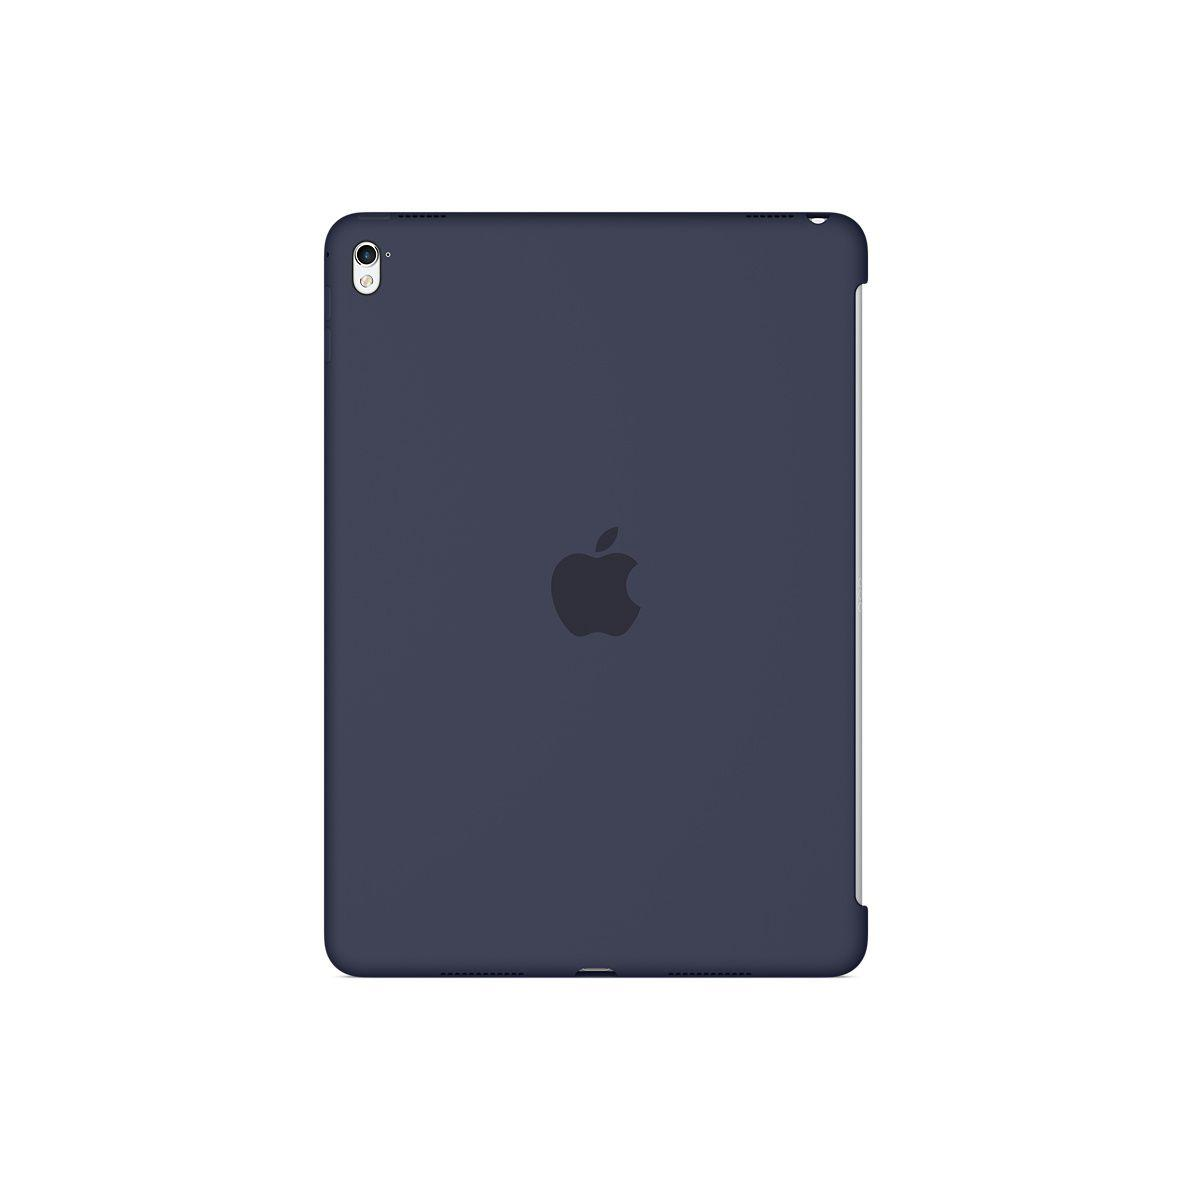 Coque apple silicone bleu nuit ipad pro 9,7'' (photo)